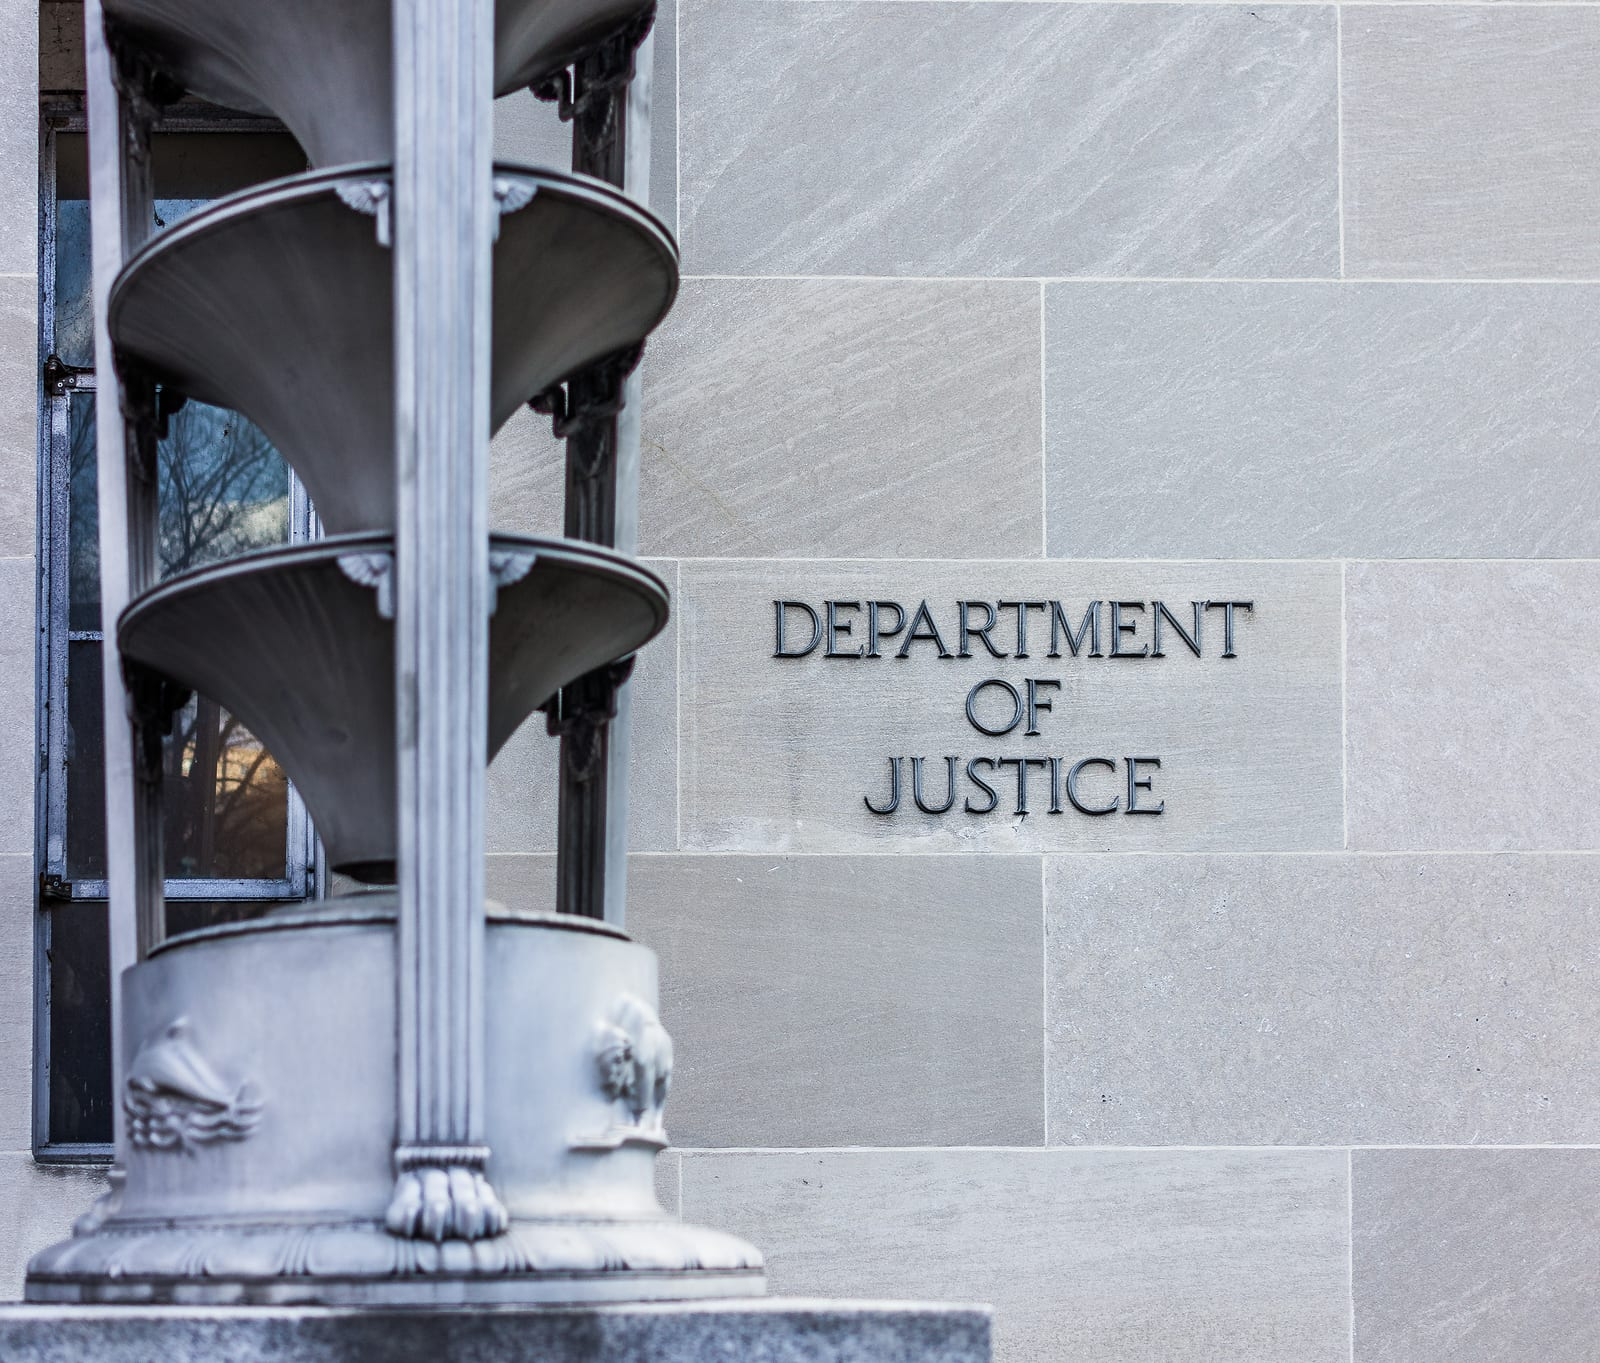 Utah News: SALT LAKE CITY, Grand Jury Returns Superseding Indictment In Shamo Case; Adds Distribution Of Fentanyl Count Resulting In Death